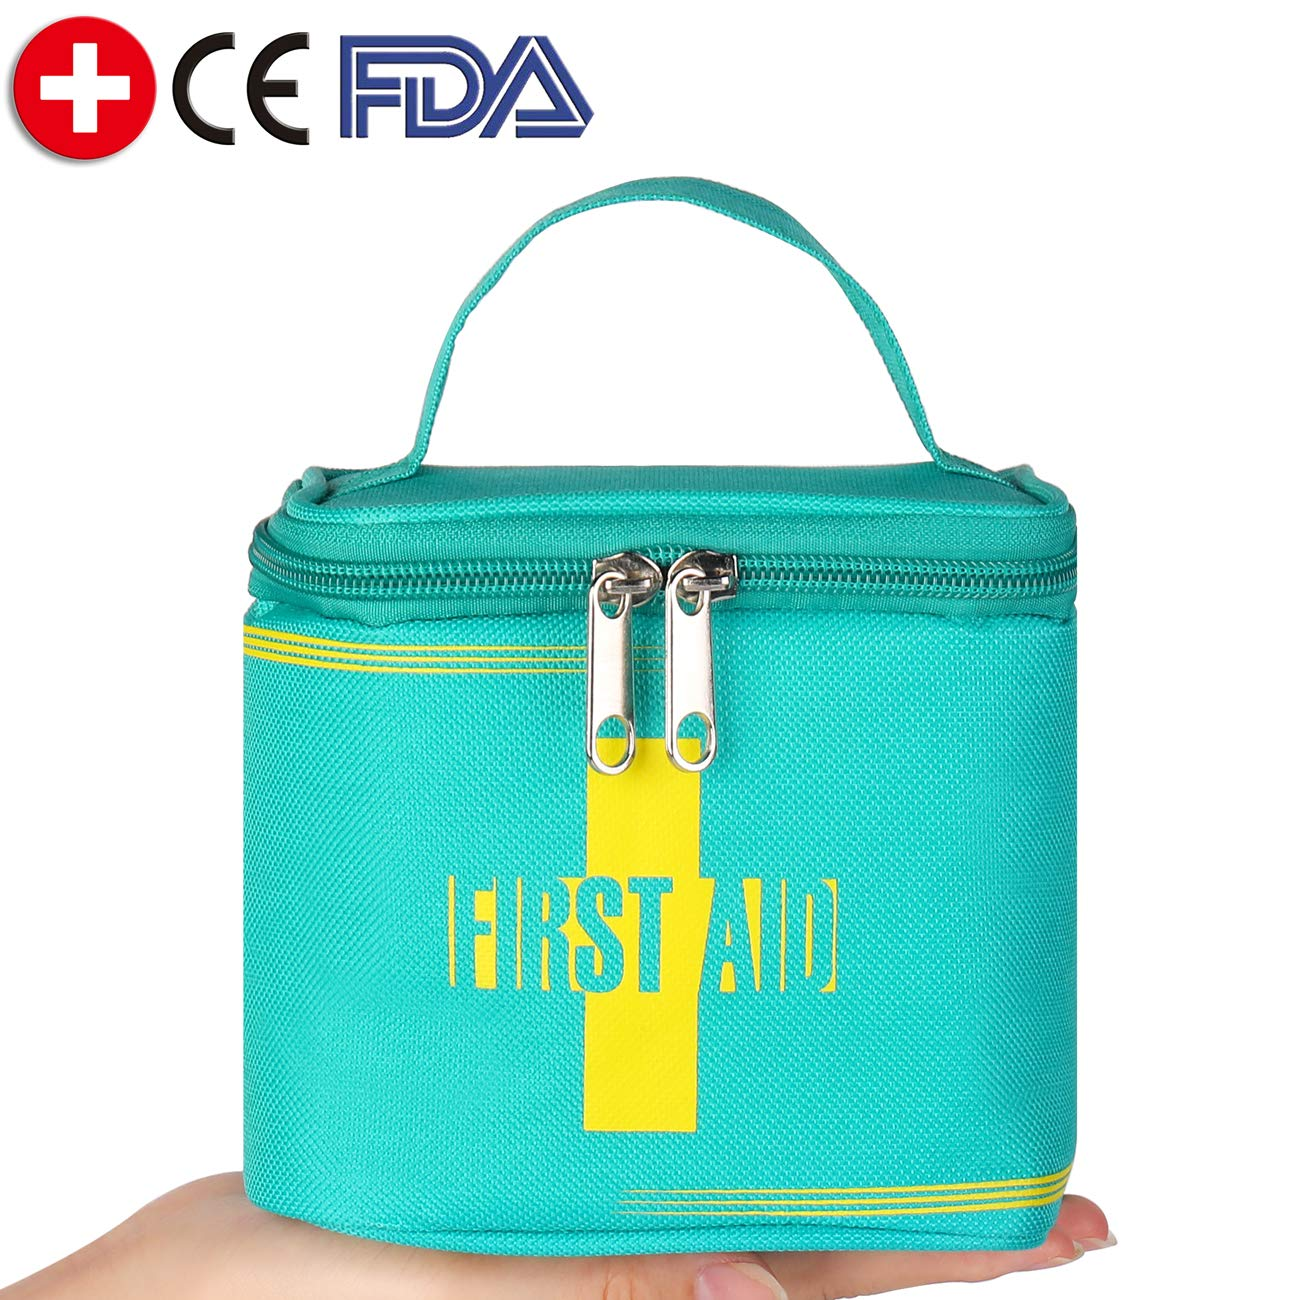 First Aid Kit Medical Survival Bag for Outdoor Sports Injuries Comprehensive Protection Water Resistant Case Safety Emergency Kit for Adventures Camping Travel Hiking Boat